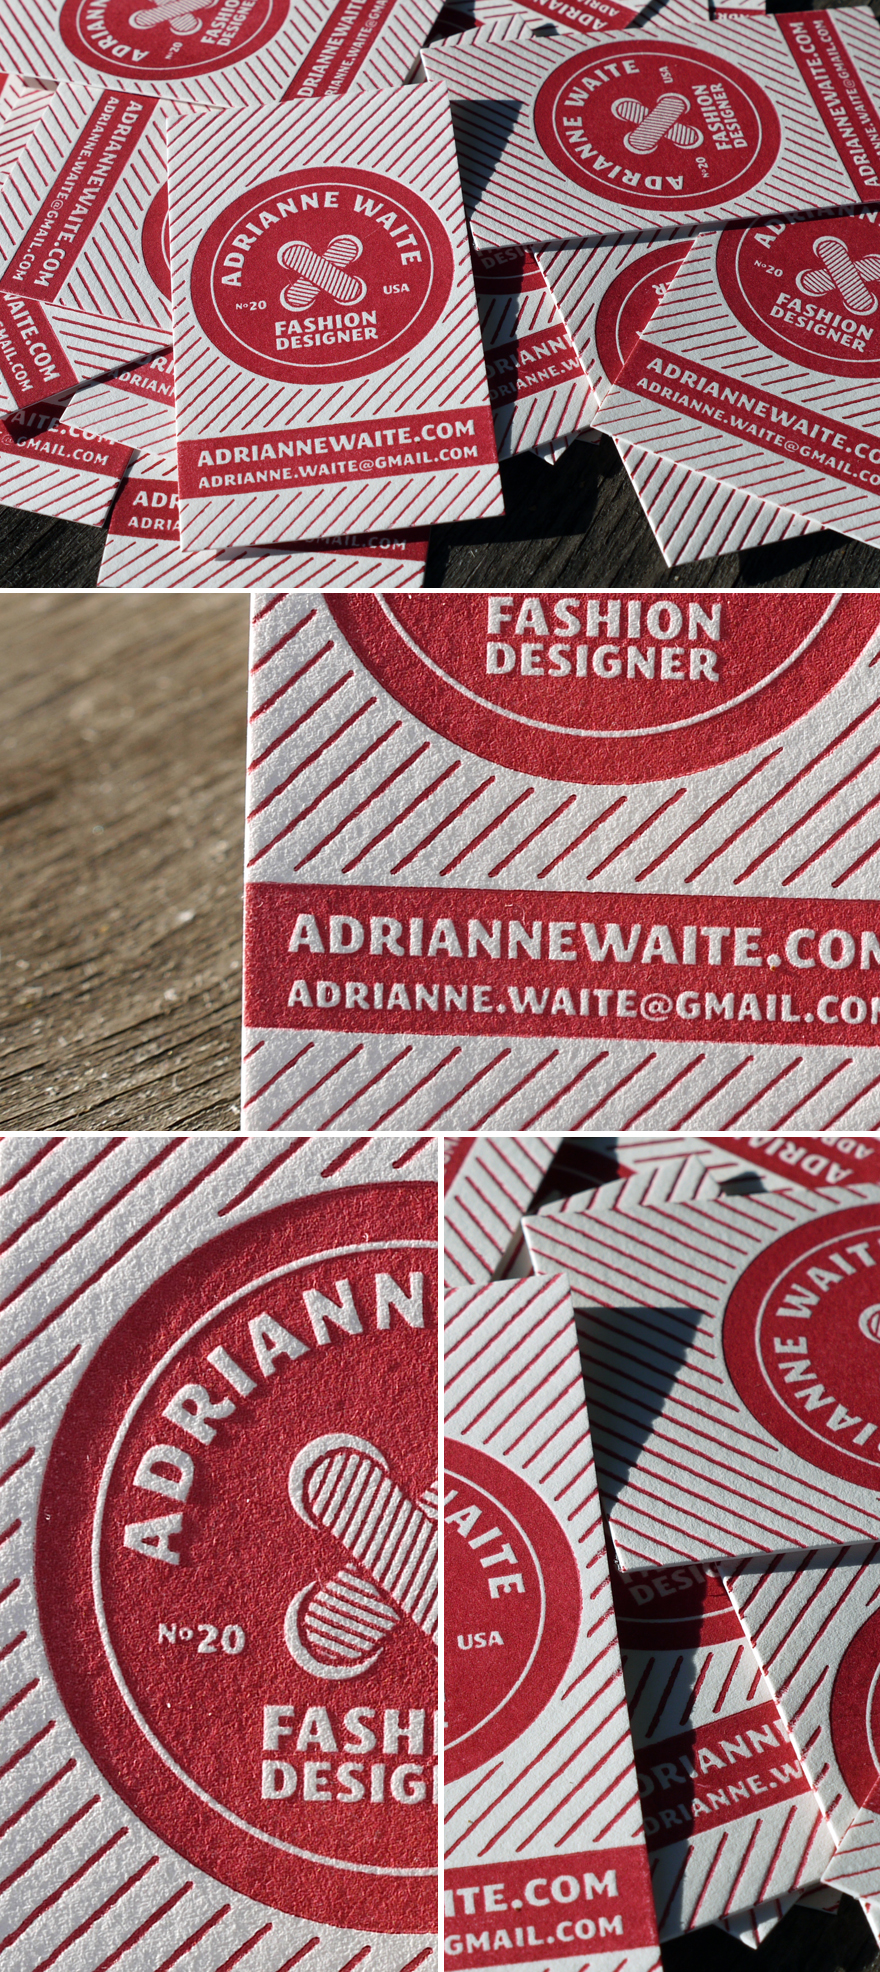 Adrianne Waite - letterpress business card